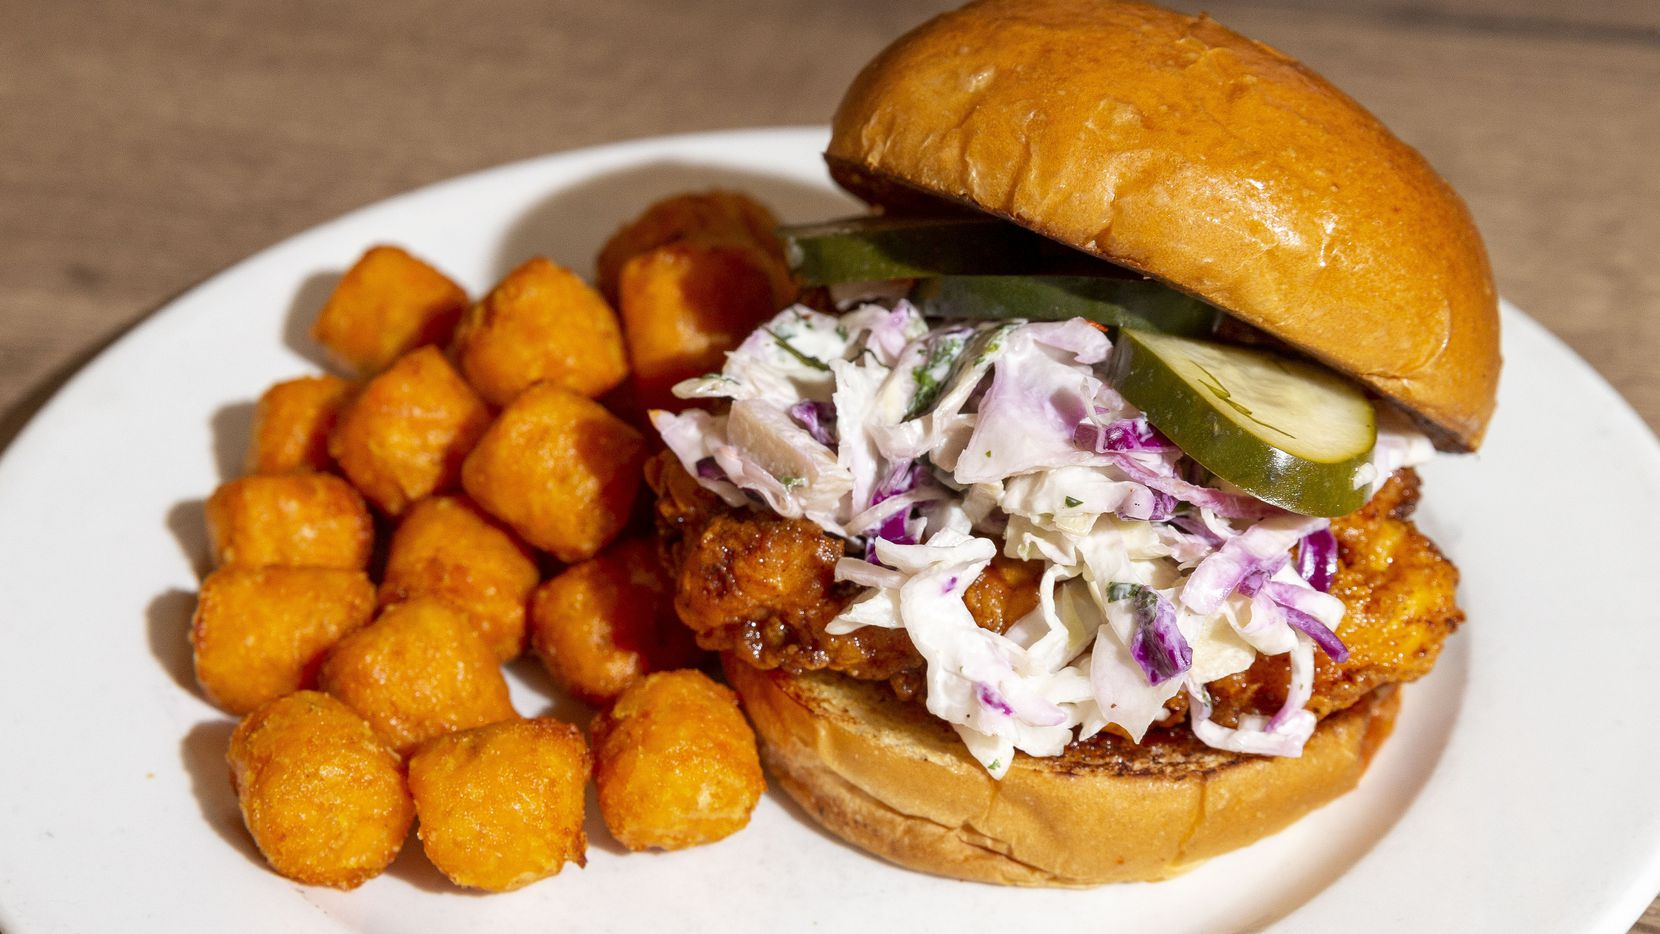 FireBird Fowl is a bird-themed restaurant with a long list of menu items that include Cornish game hen, emu, ostrich, quail and more. Here's the Nashville hot chicken sandwich.